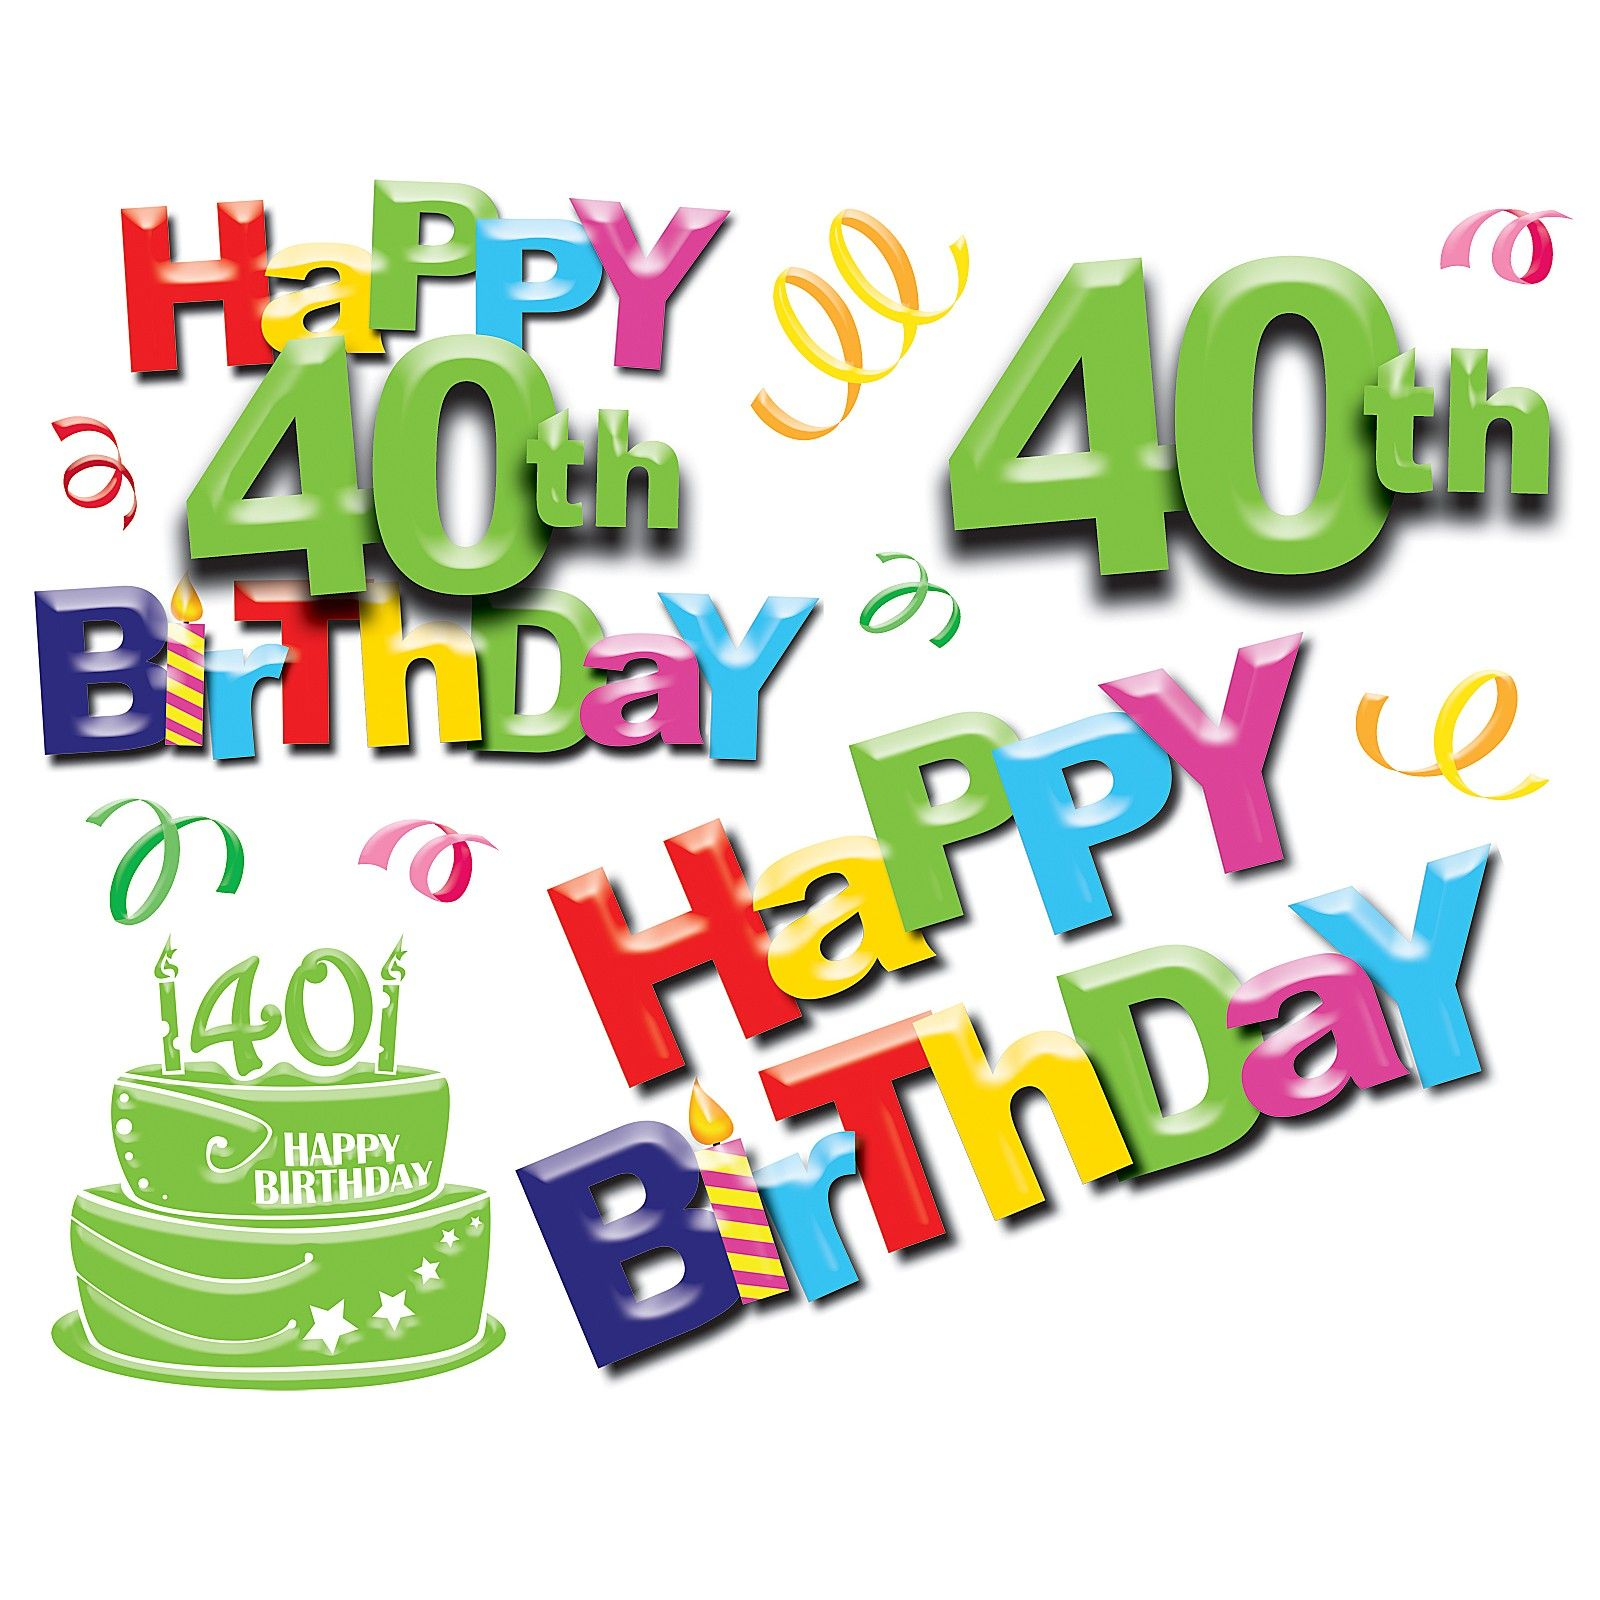 funny happy 40th birthday images happy 40th birthday to tolu